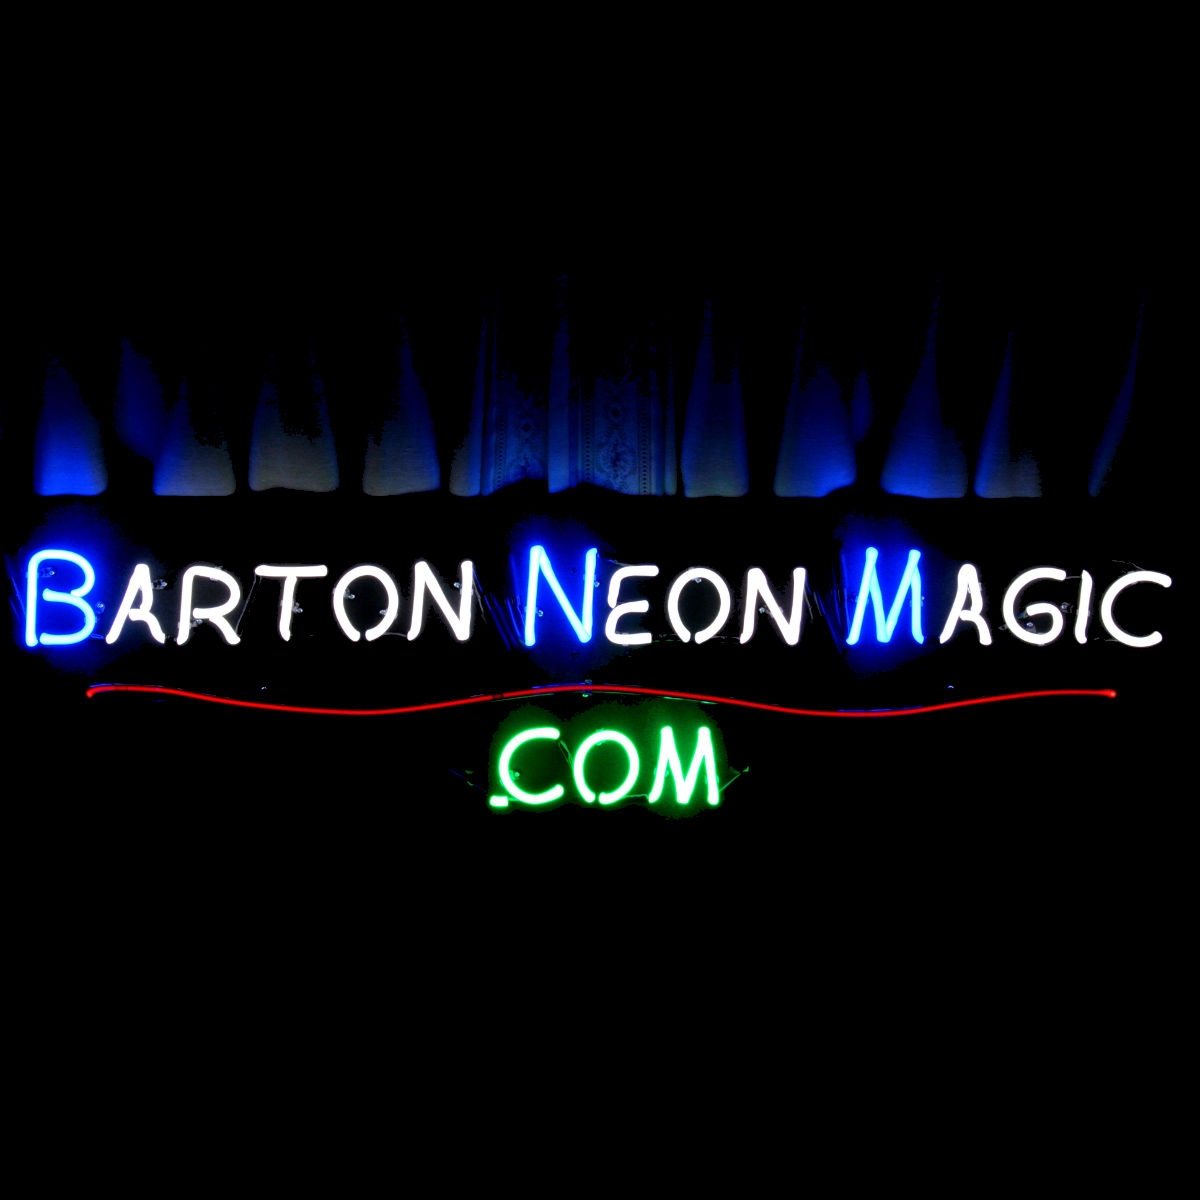 Custom Aviation Neon Light Sculptures by John Barton - Famous USA Neon Glass Artist - BartonNeonMagic.com